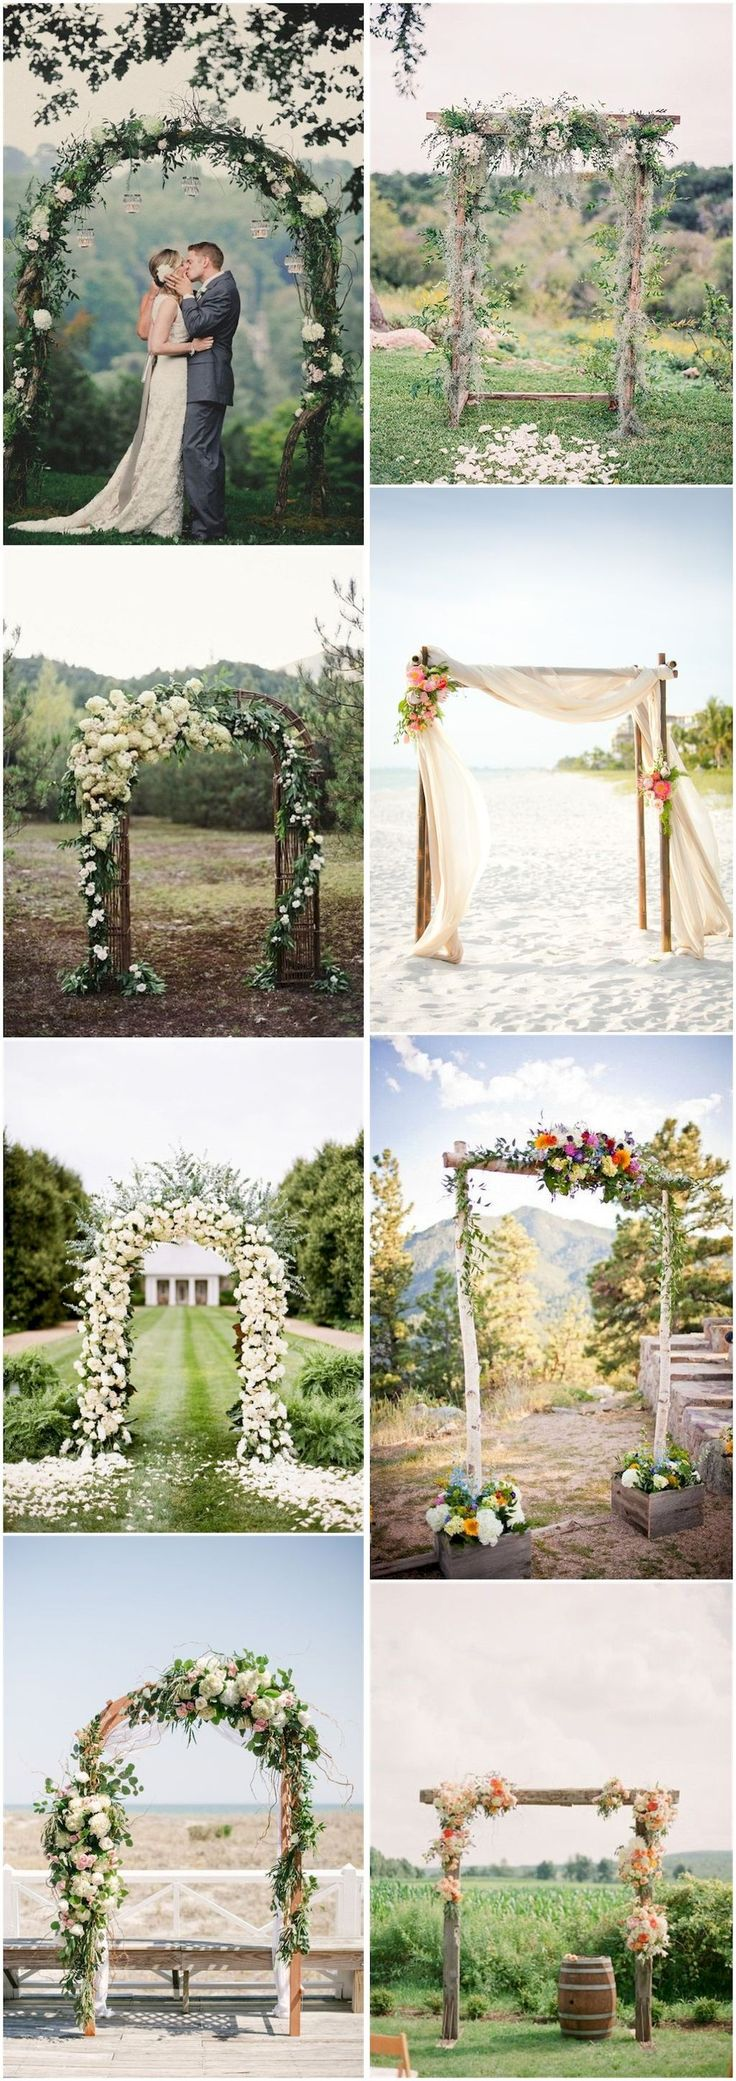 Best 25 outdoor wedding backdrops ideas on pinterest for Images of outdoor weddings